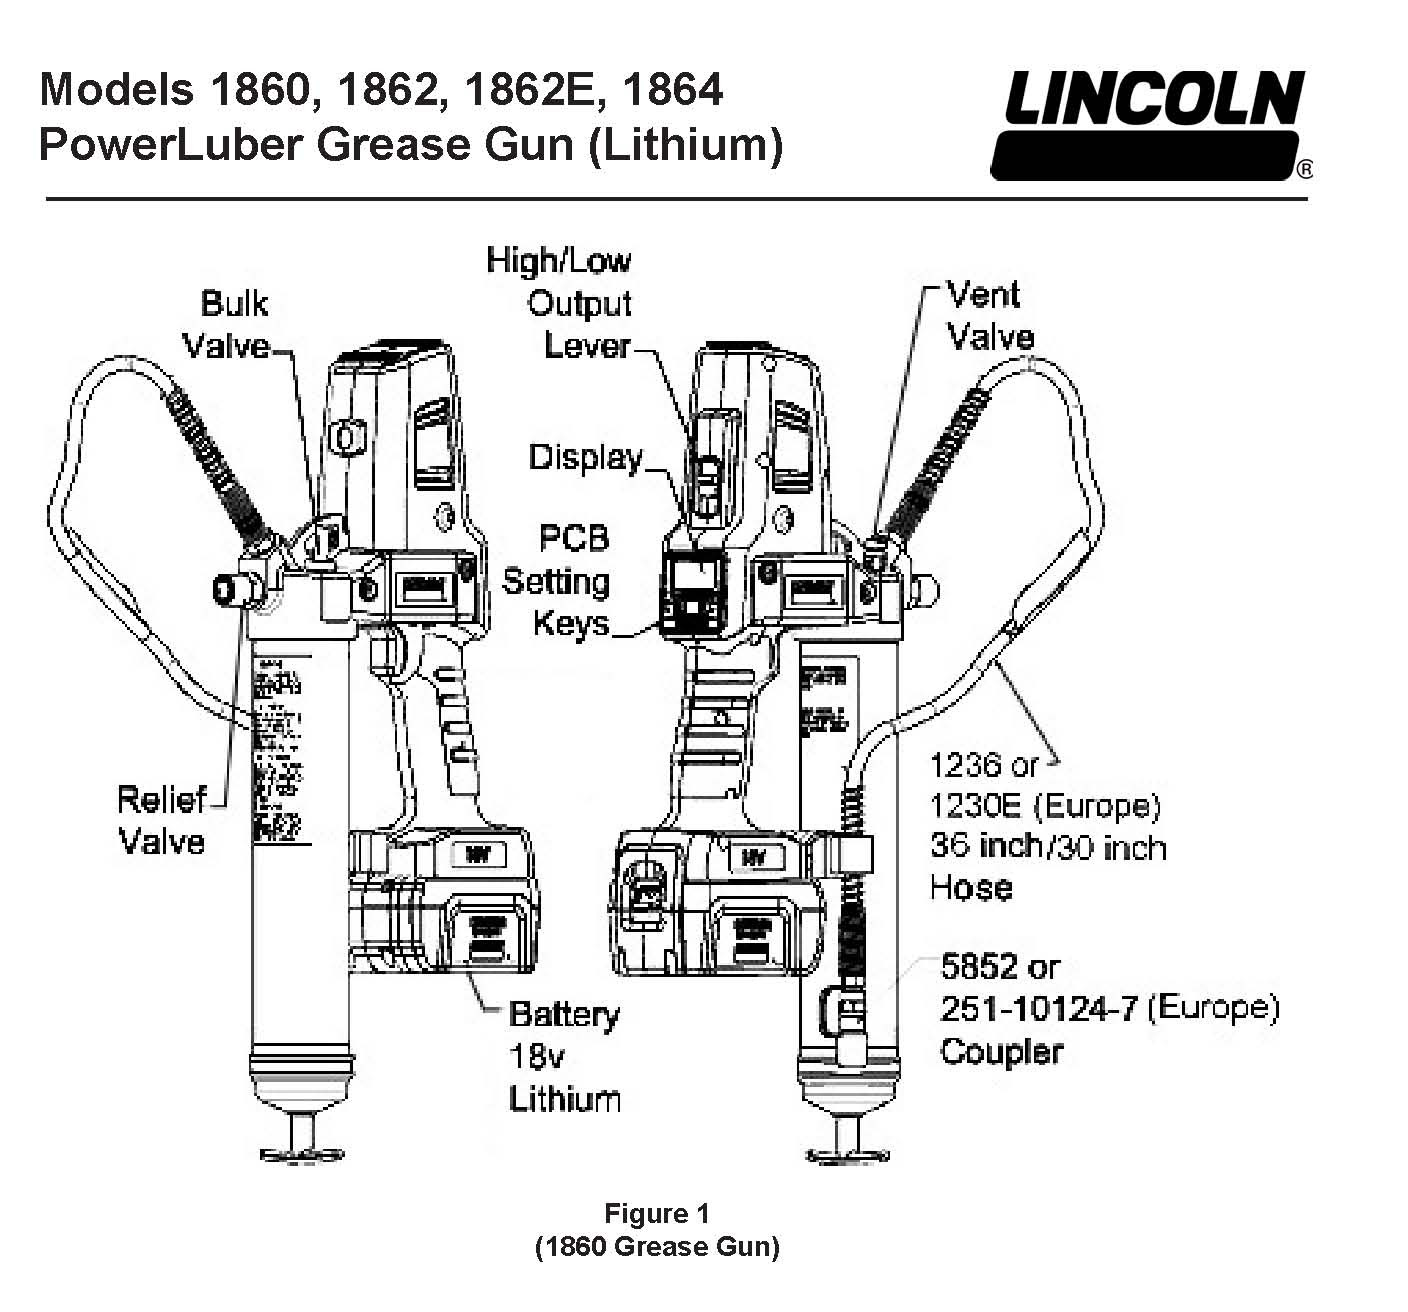 lincoln power luber 1860 series a, 18 volt lithium ion